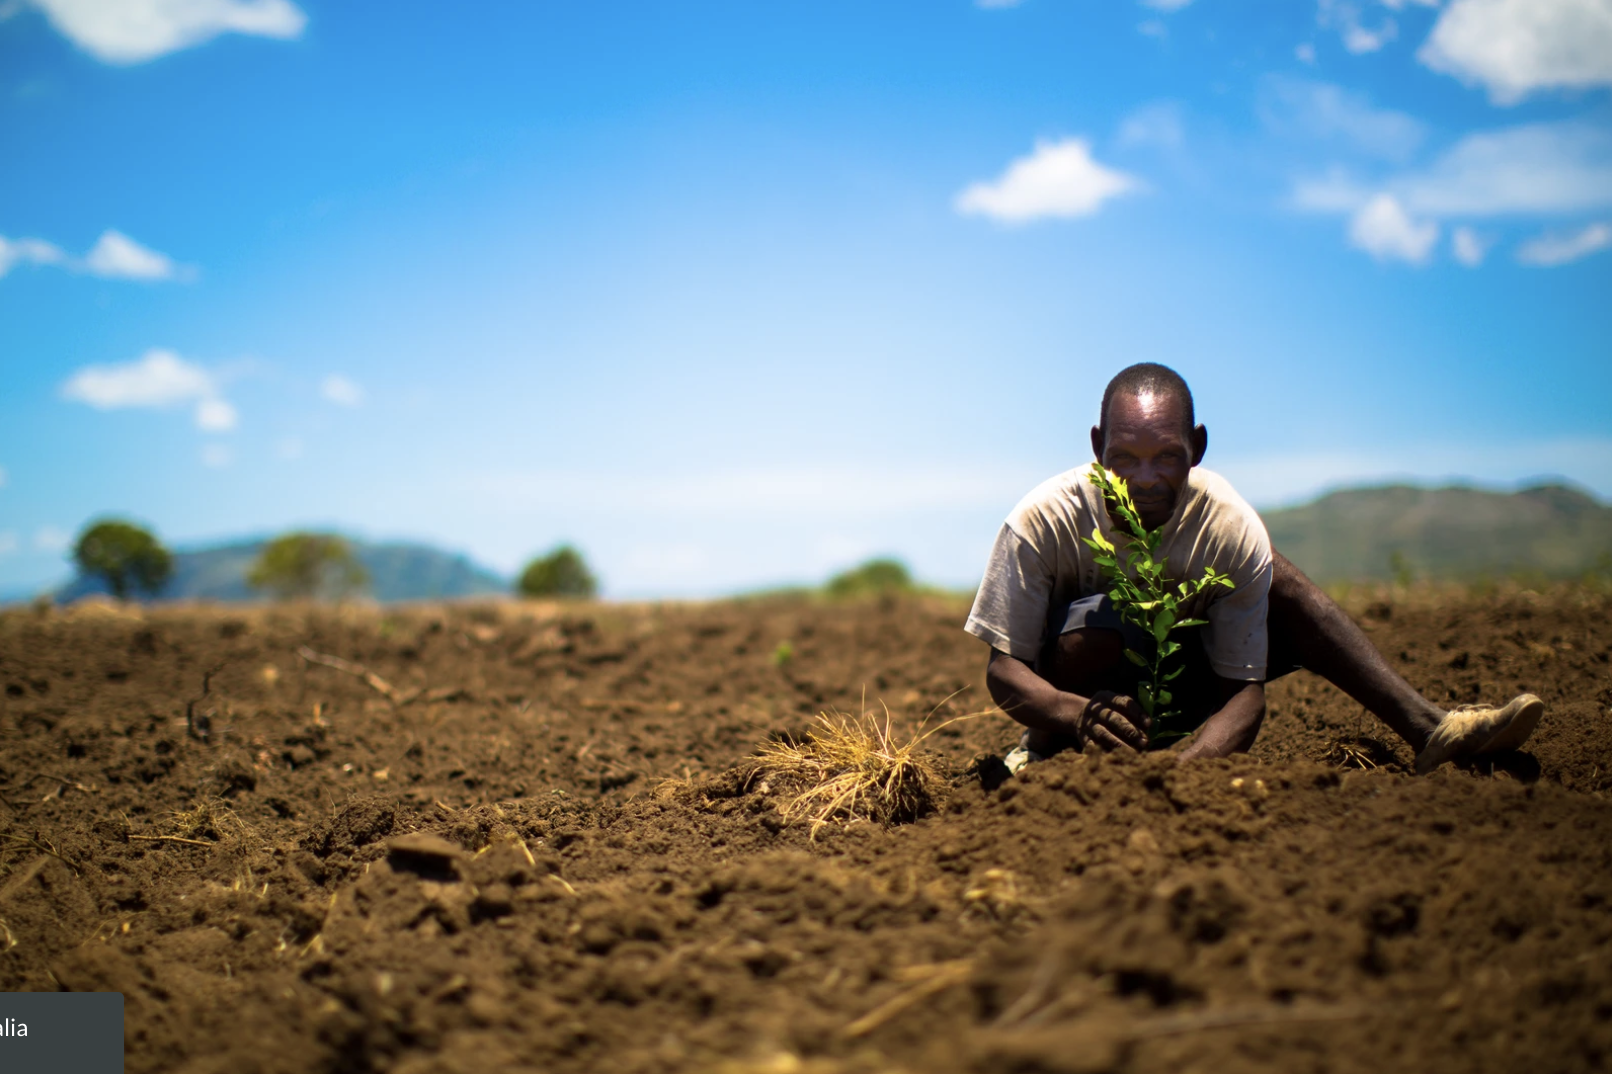 Man sitting in dirt planting a tree